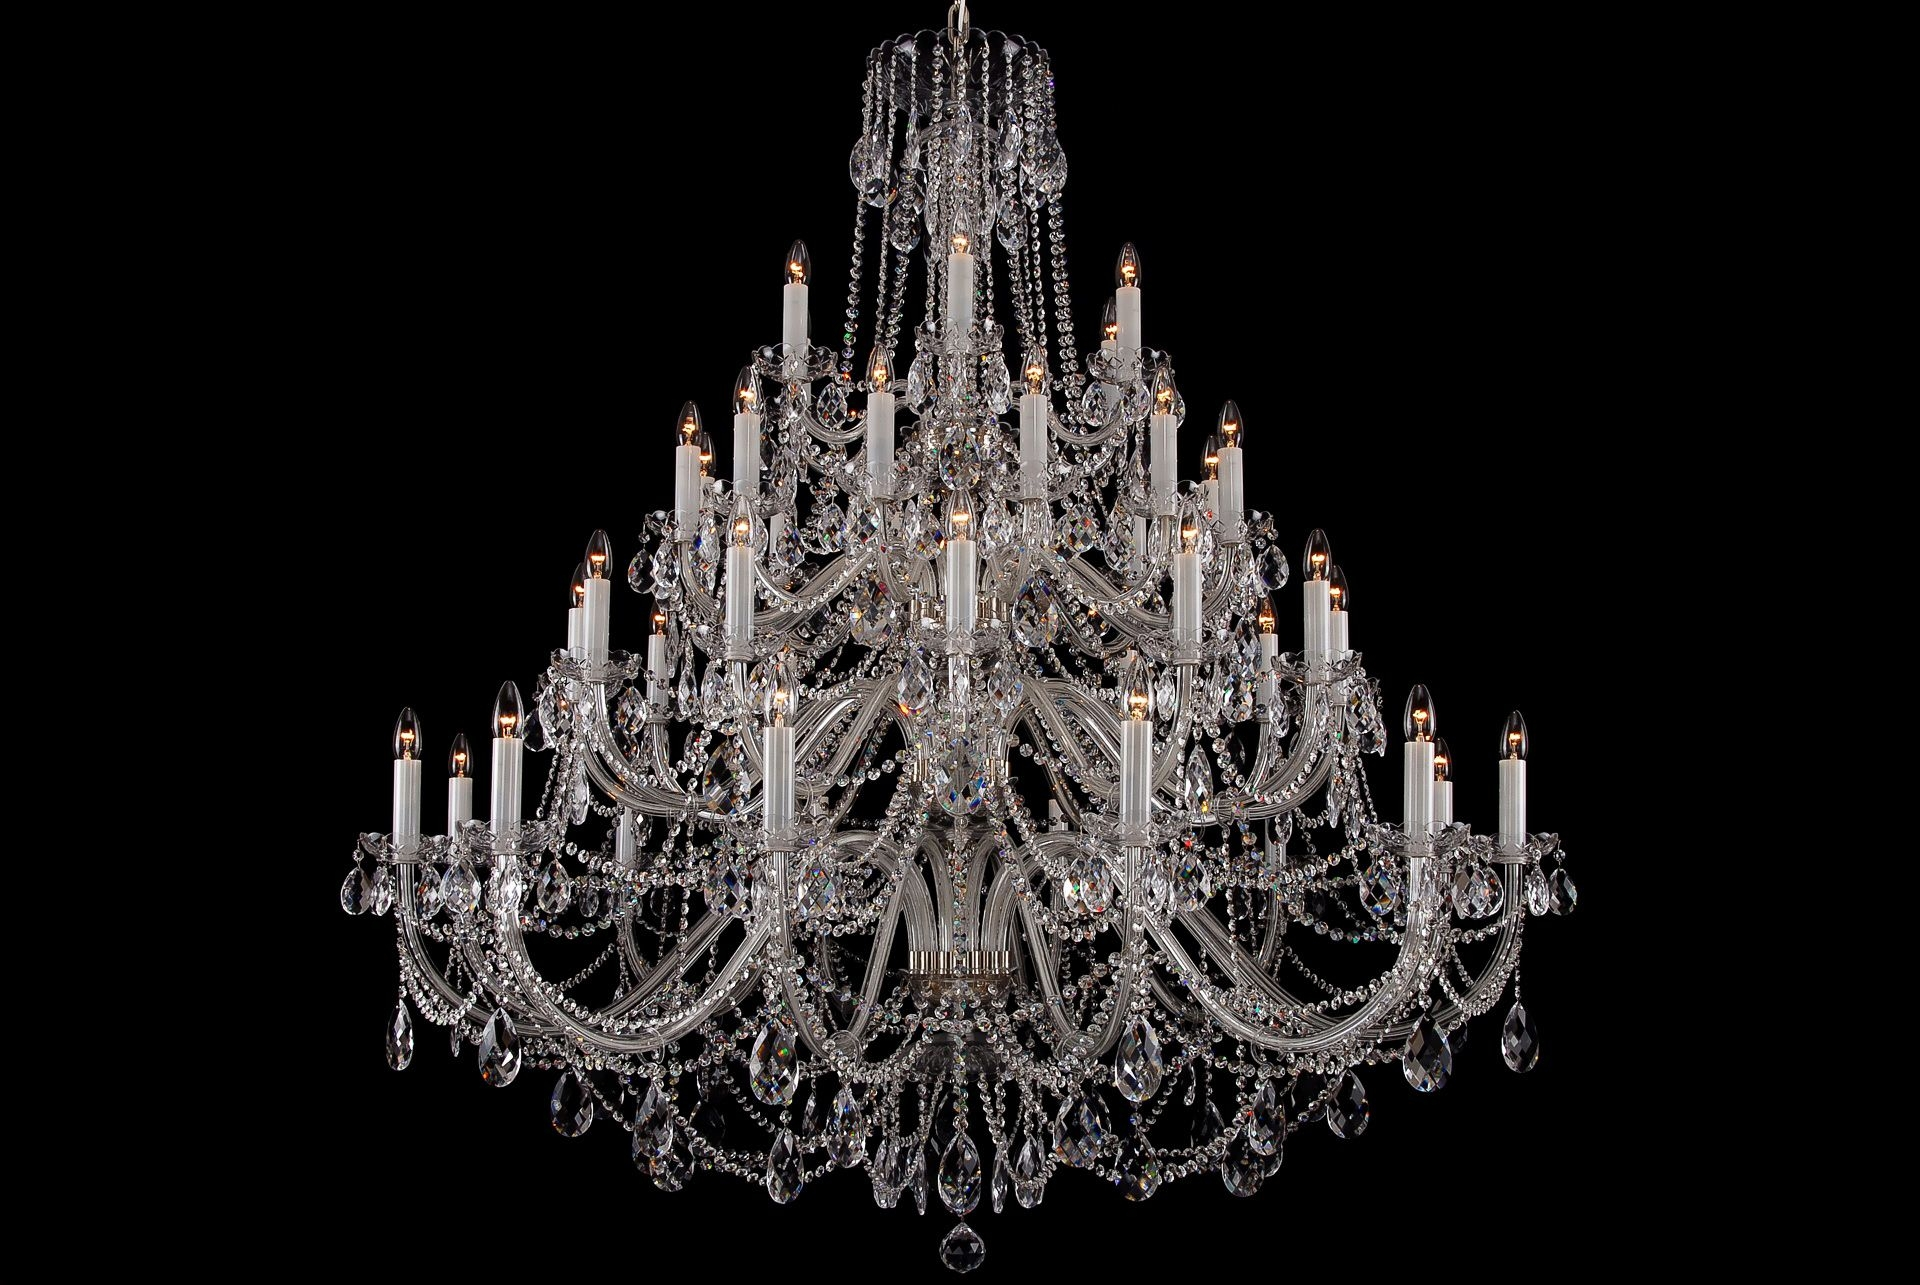 The Largest Clear Crystal Chandelier With Silver Coloured Metal Intended For Huge Crystal Chandeliers (View 1 of 15)